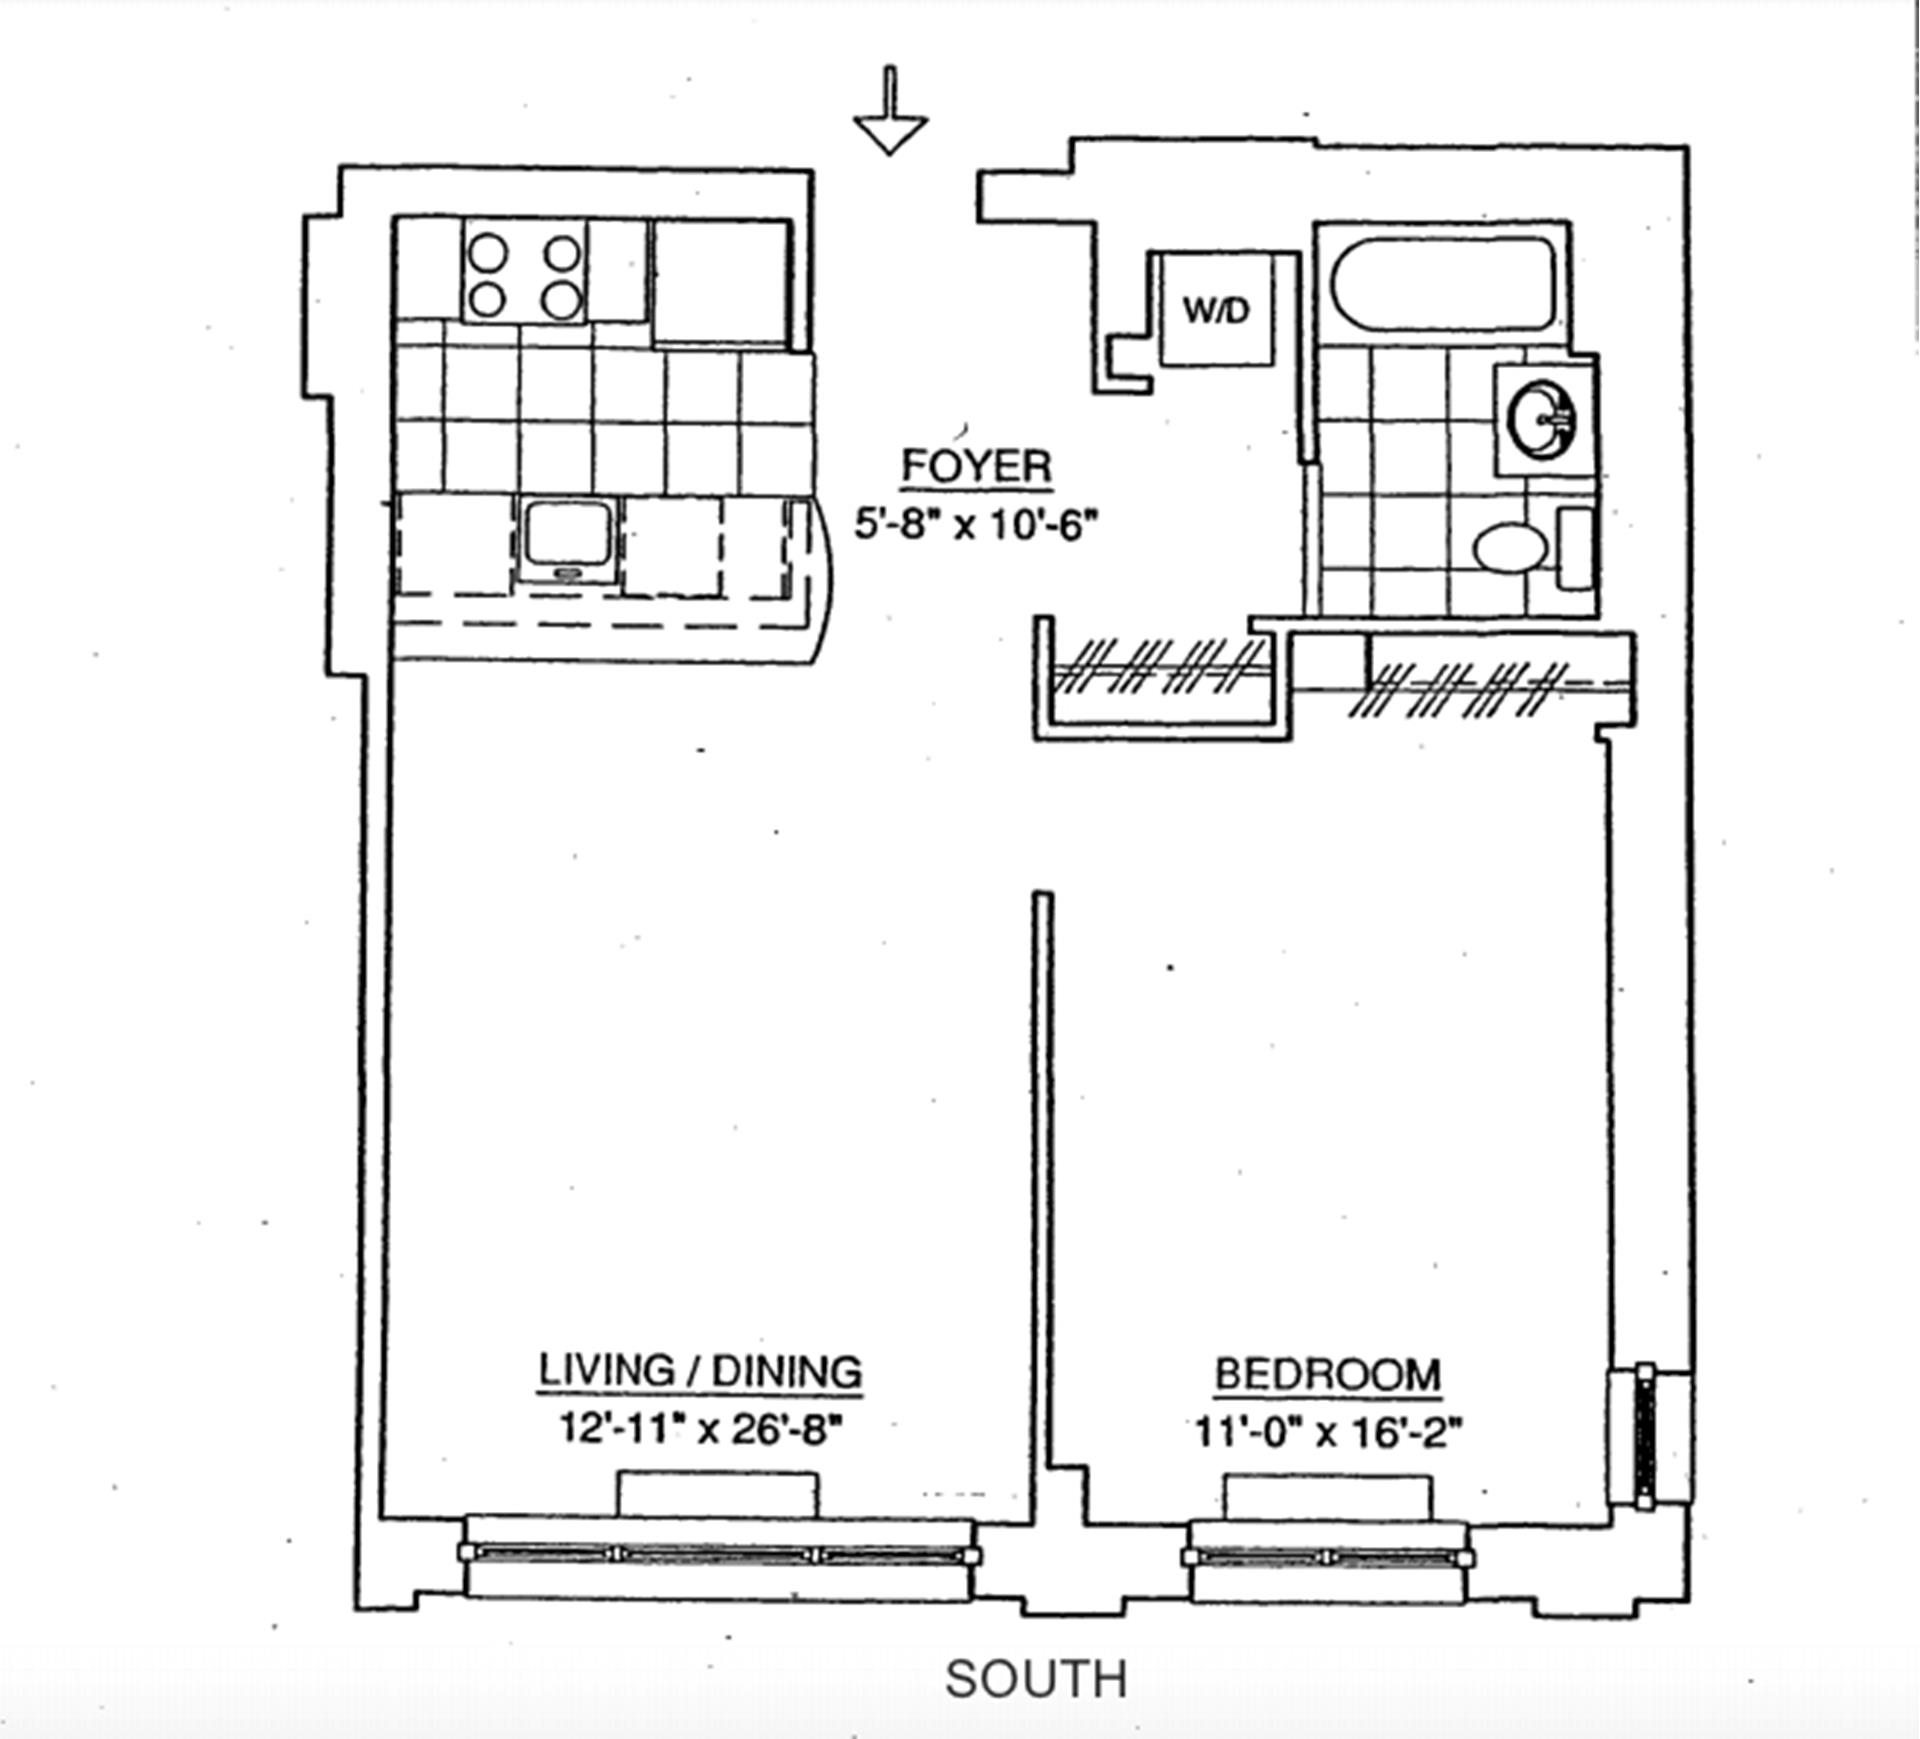 Floor plan of 555 West 23rd St, S6D - Chelsea, New York